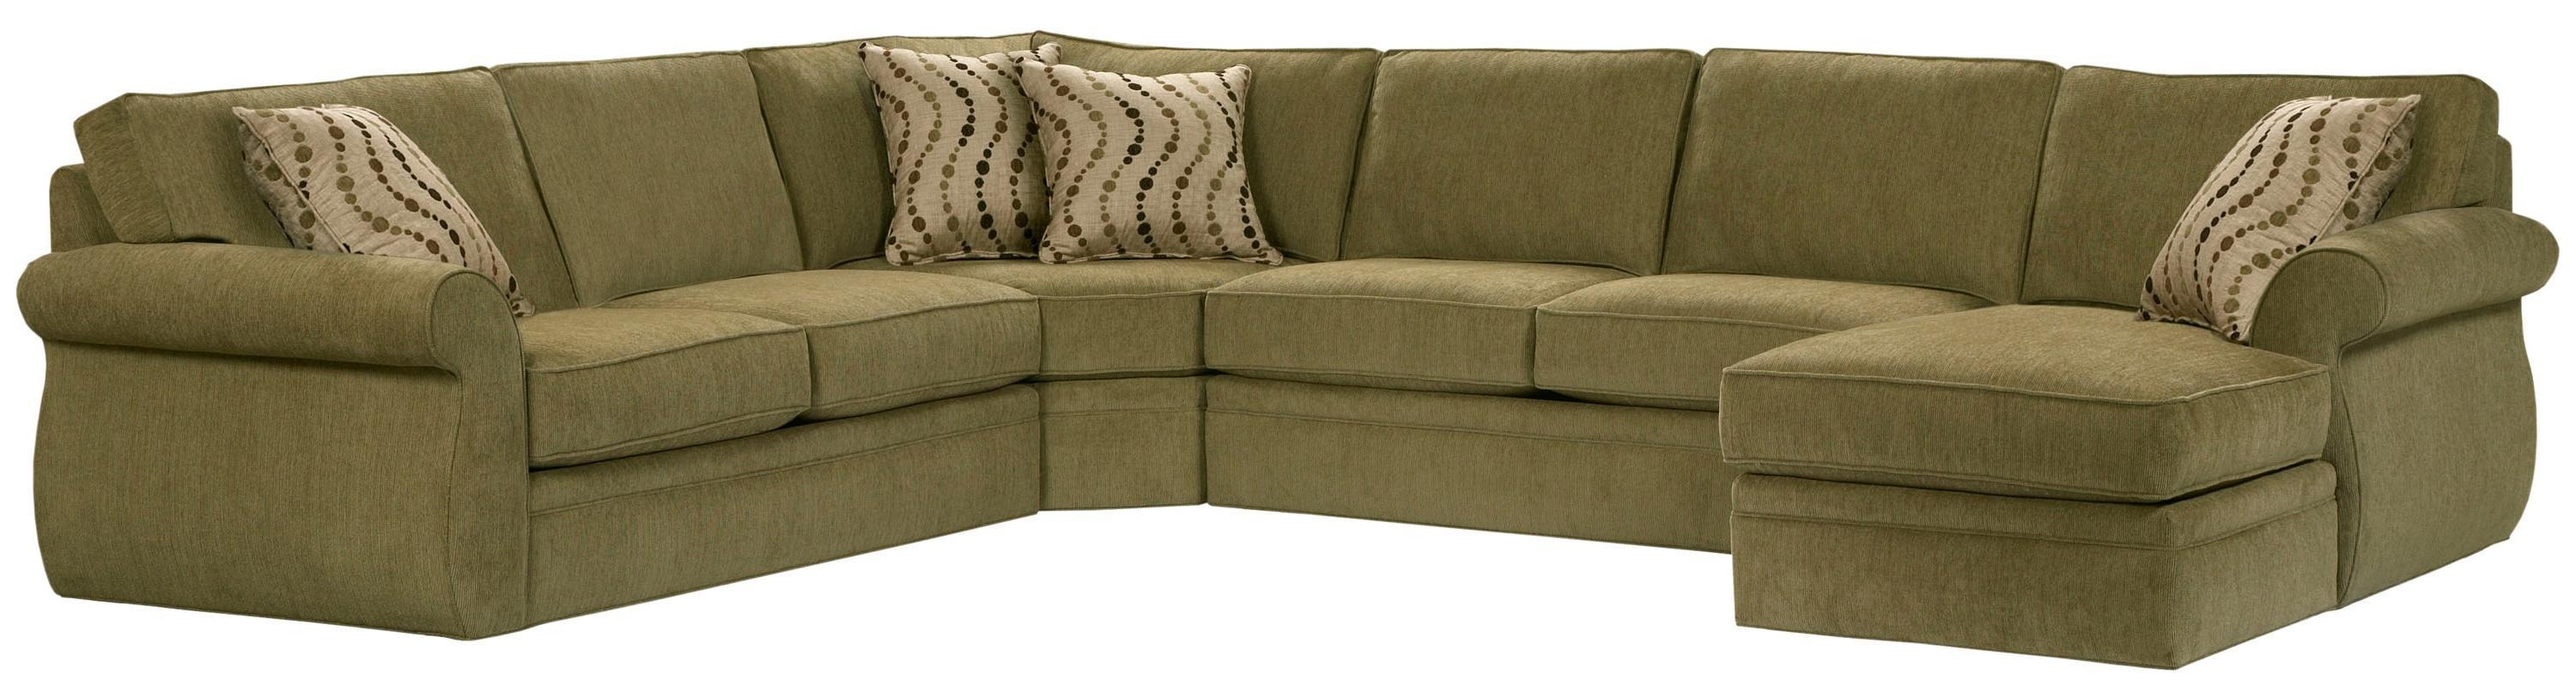 Broyhill Furniture Veronica Right Arm Facing Customizable Chaise Regarding Broyhill Reclining Sofas (View 12 of 20)